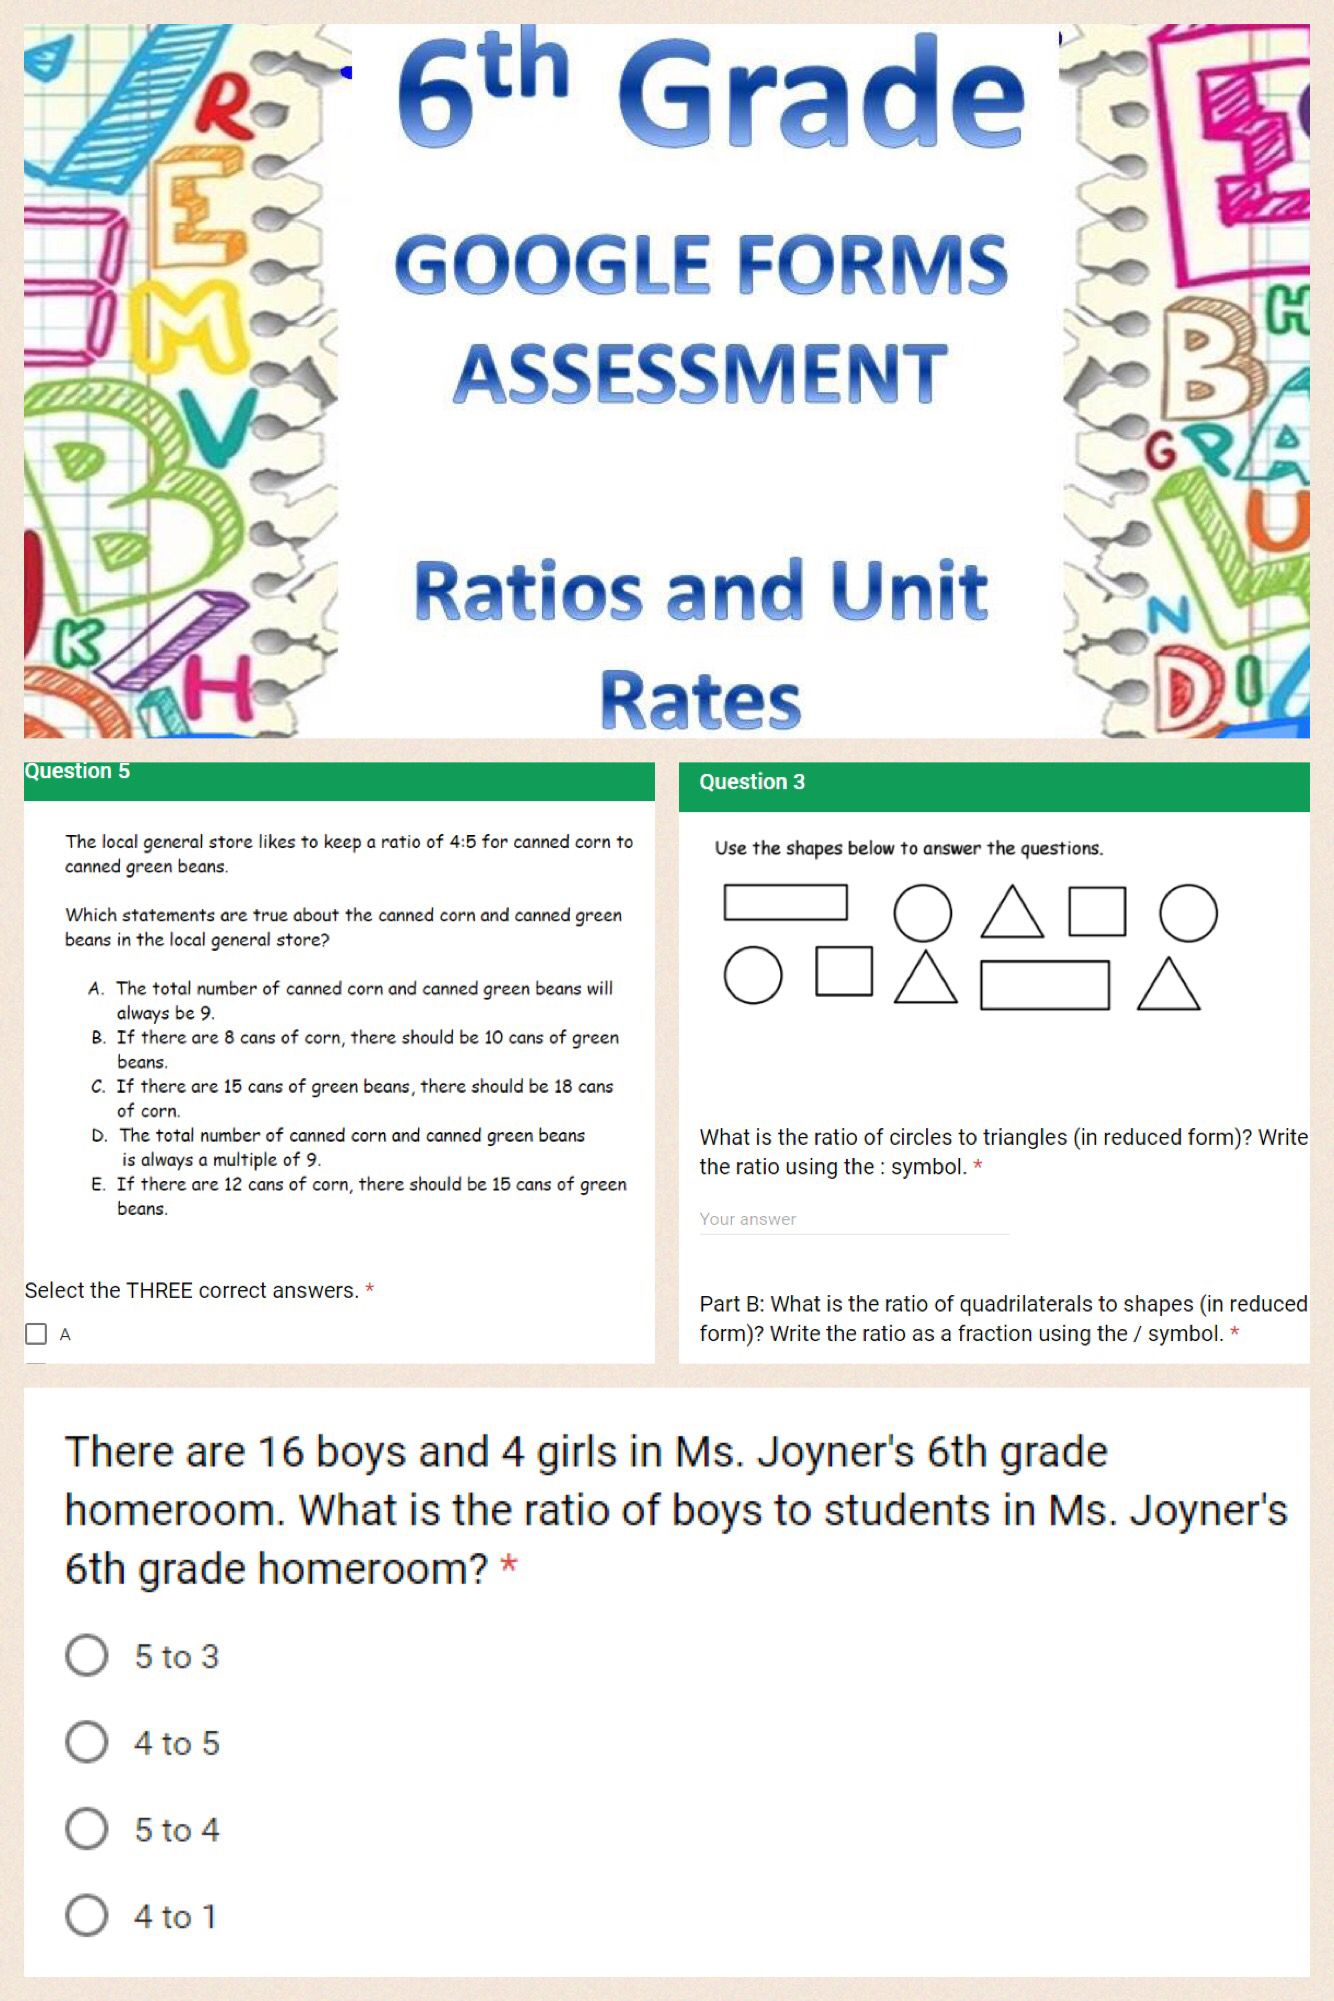 medium resolution of 6th Grade Ratios and Unit Rates Google Forms Assessment   Free math  worksheets